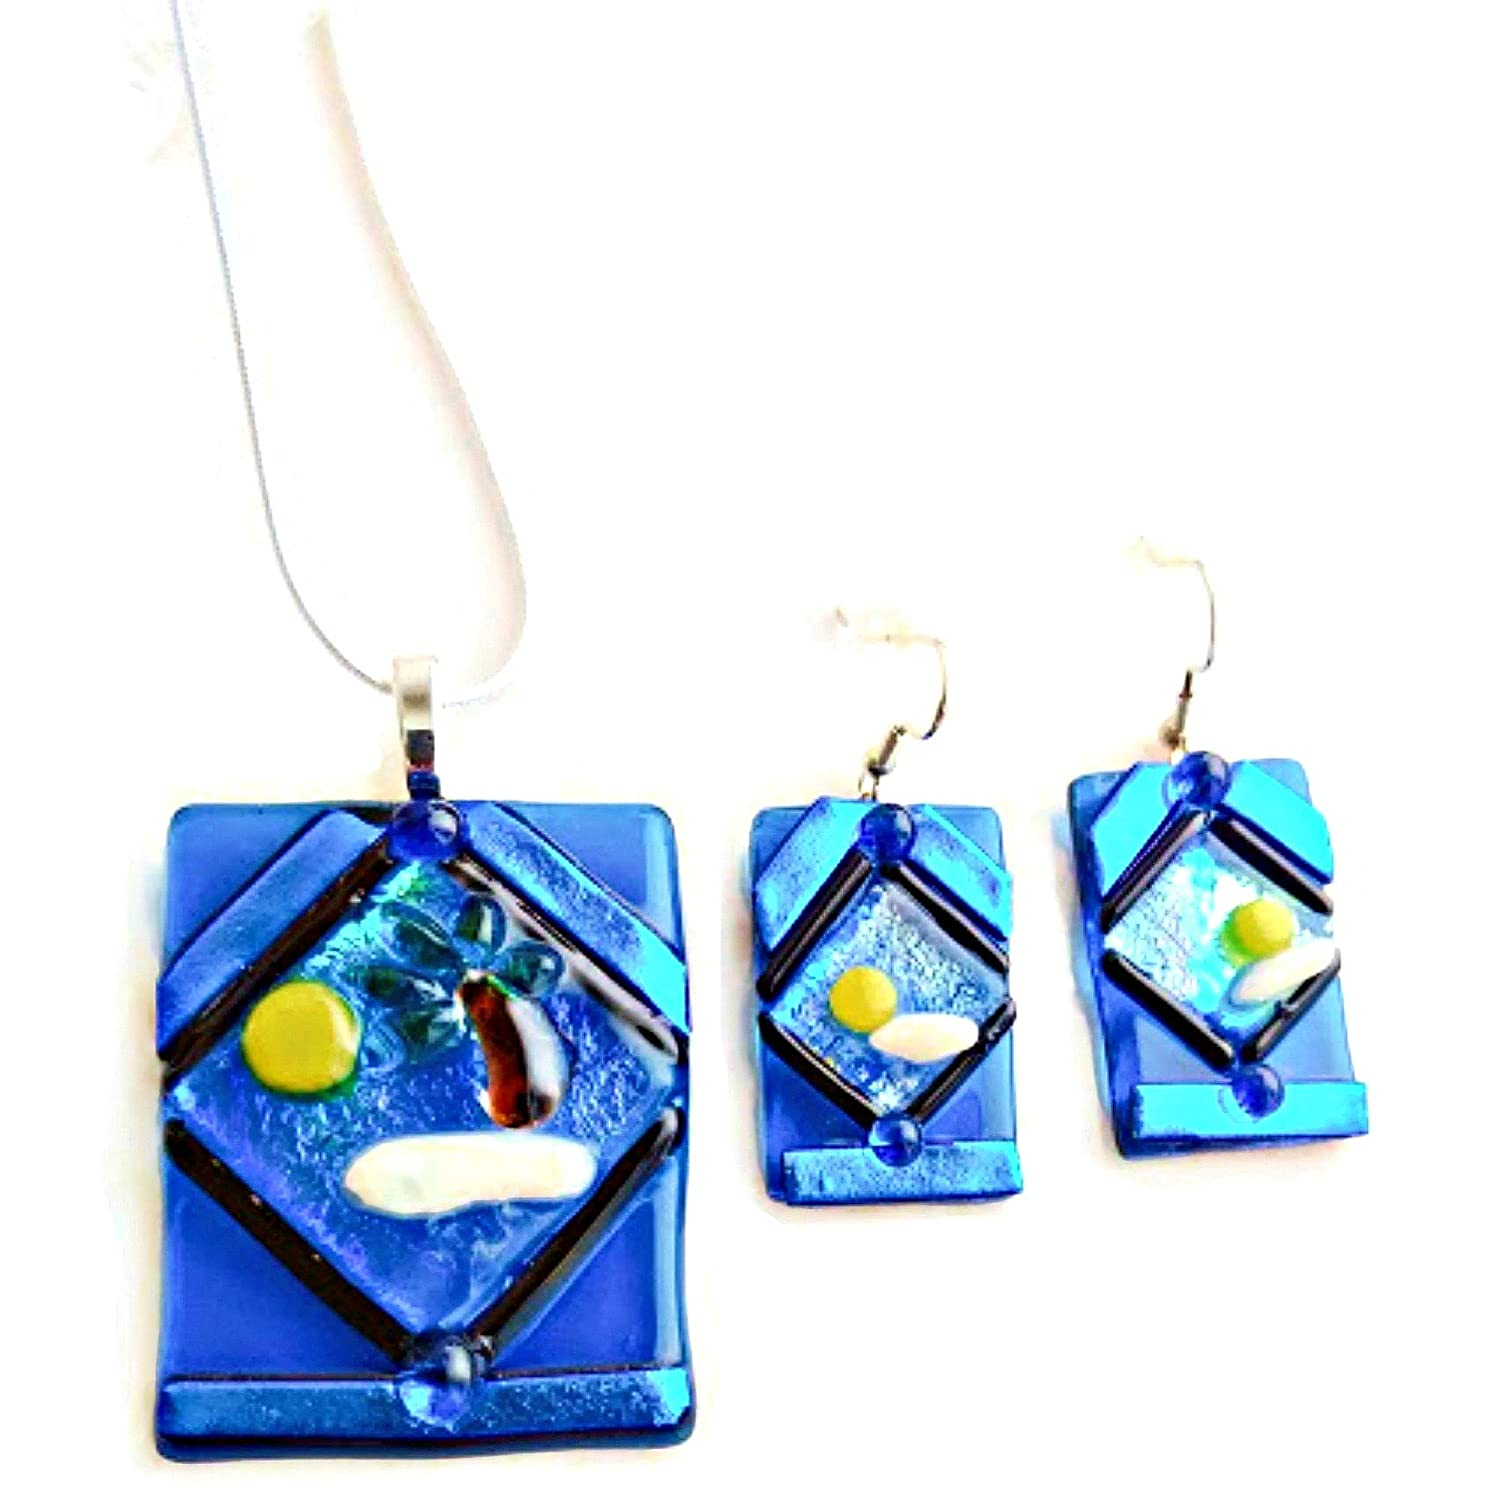 Fused Glass Necklace /& Earrings